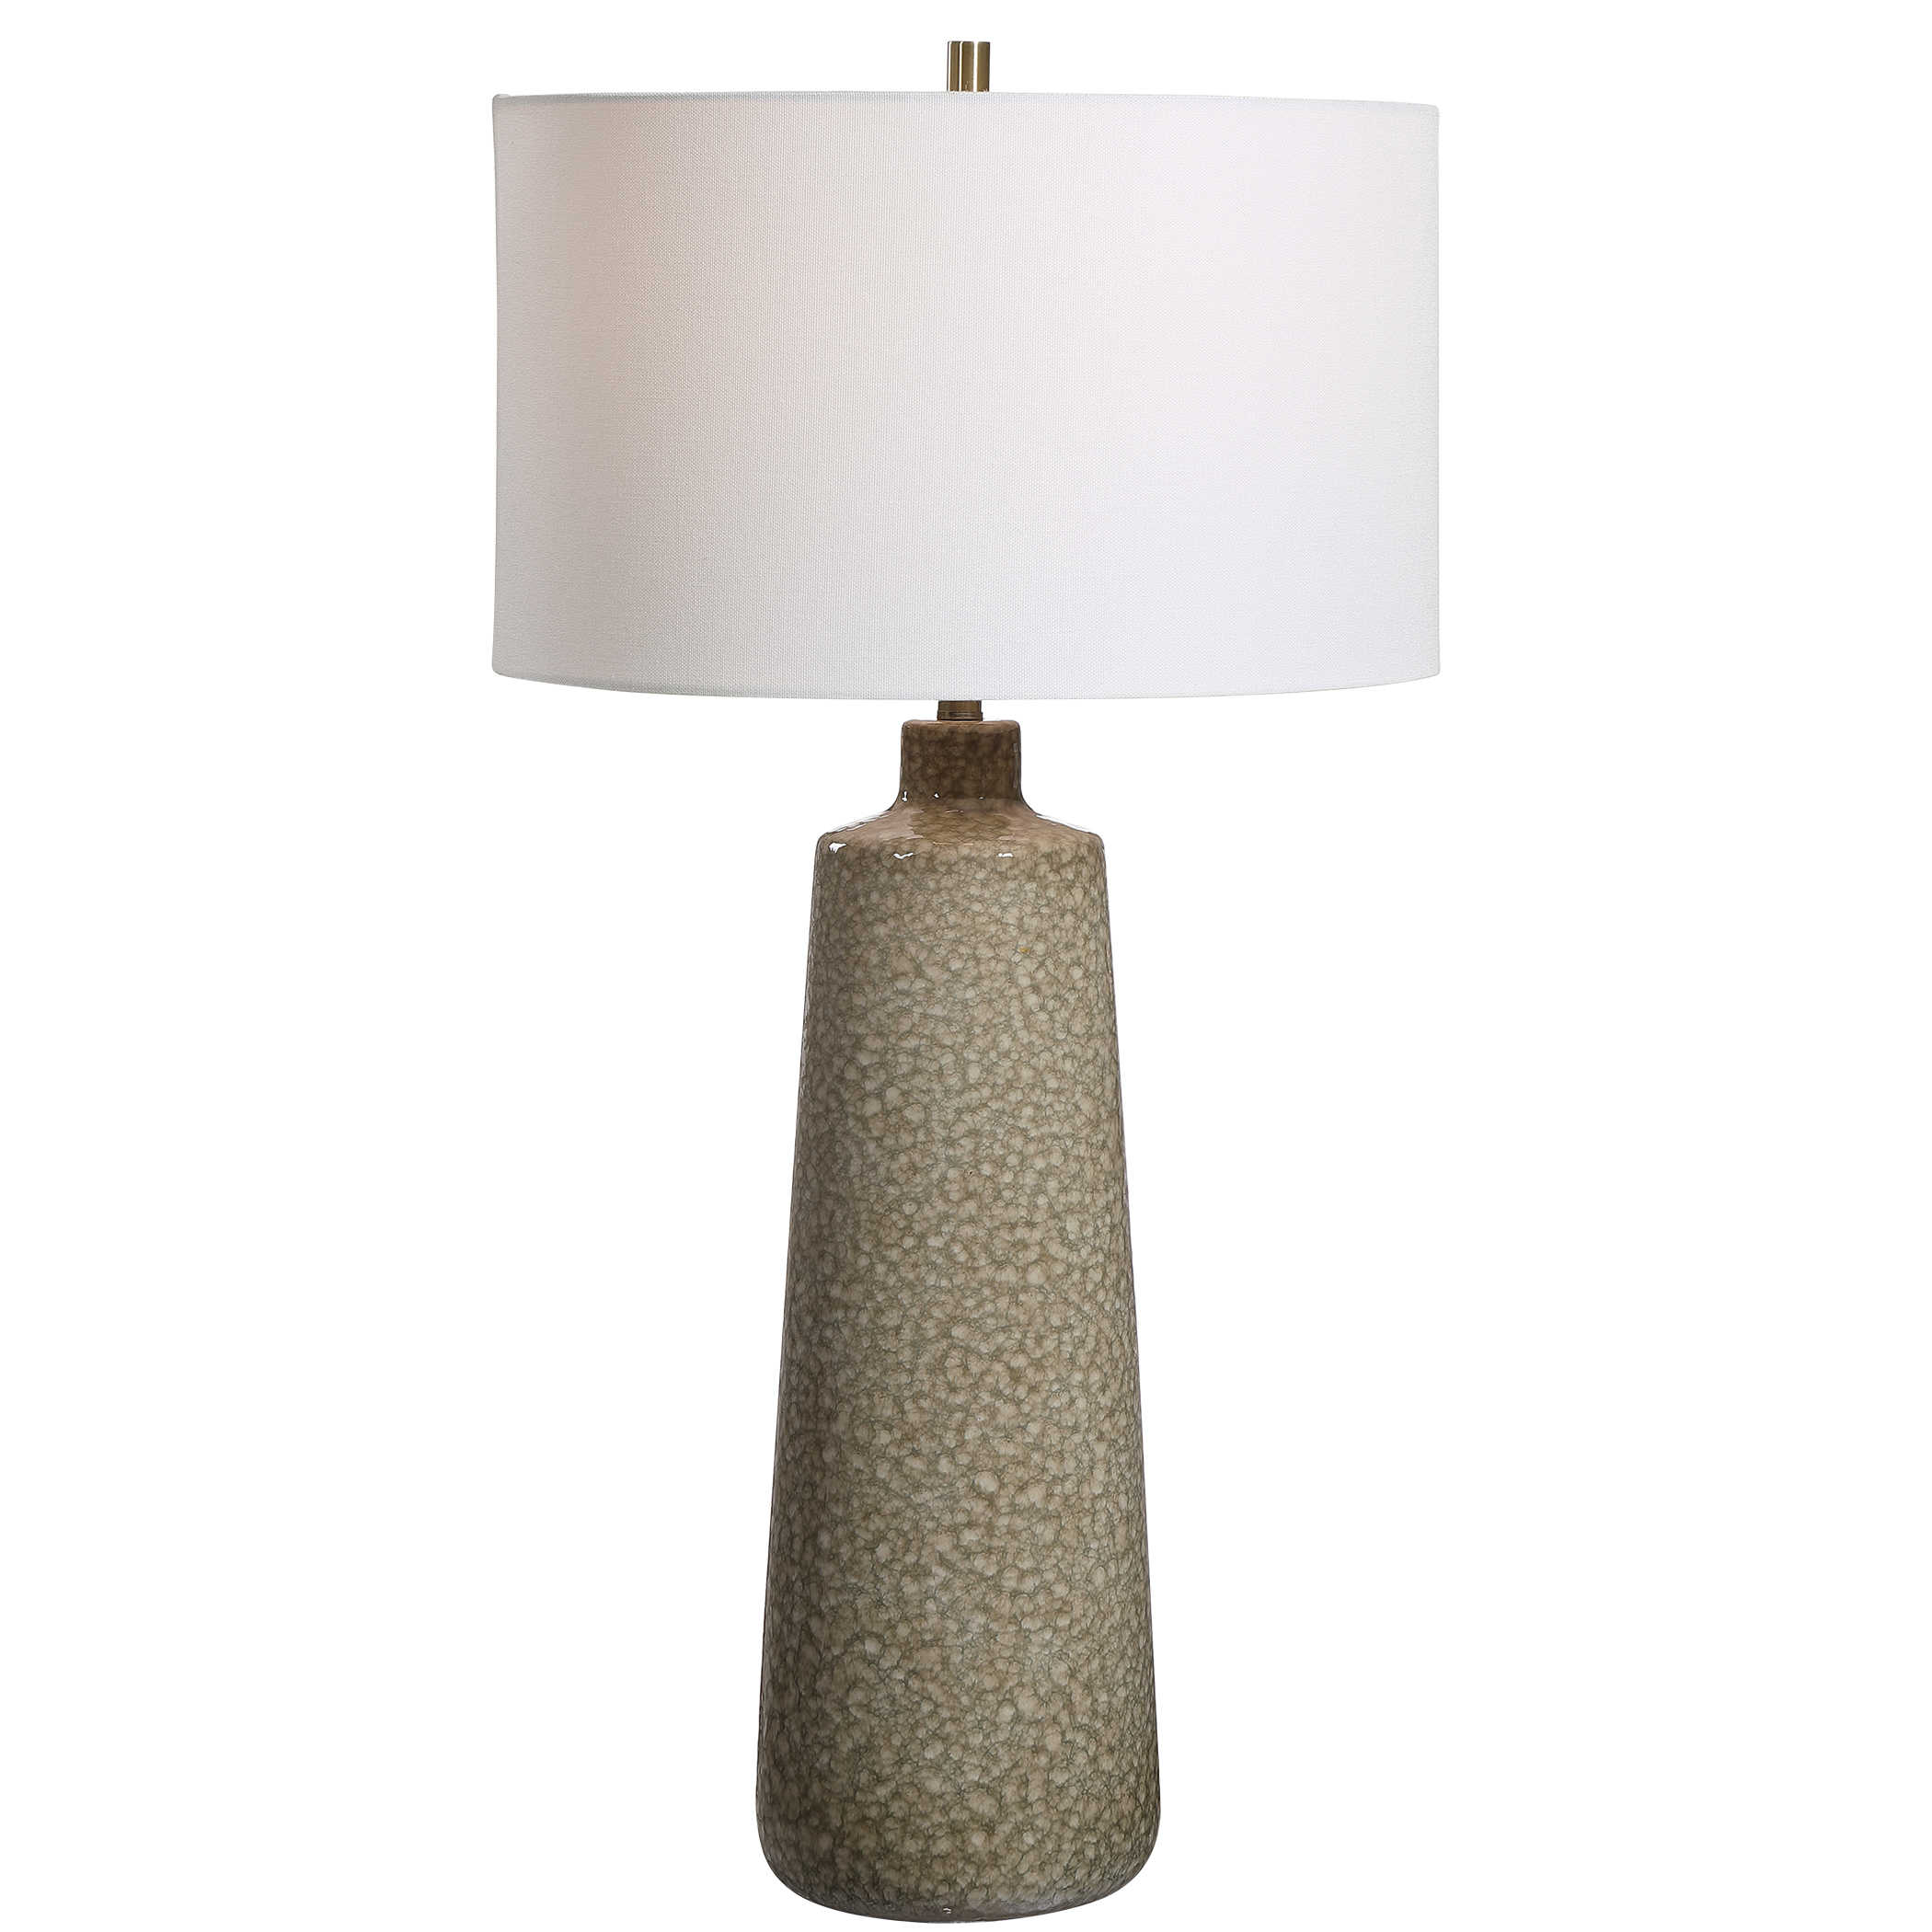 Addy Table Lamp-$275.00